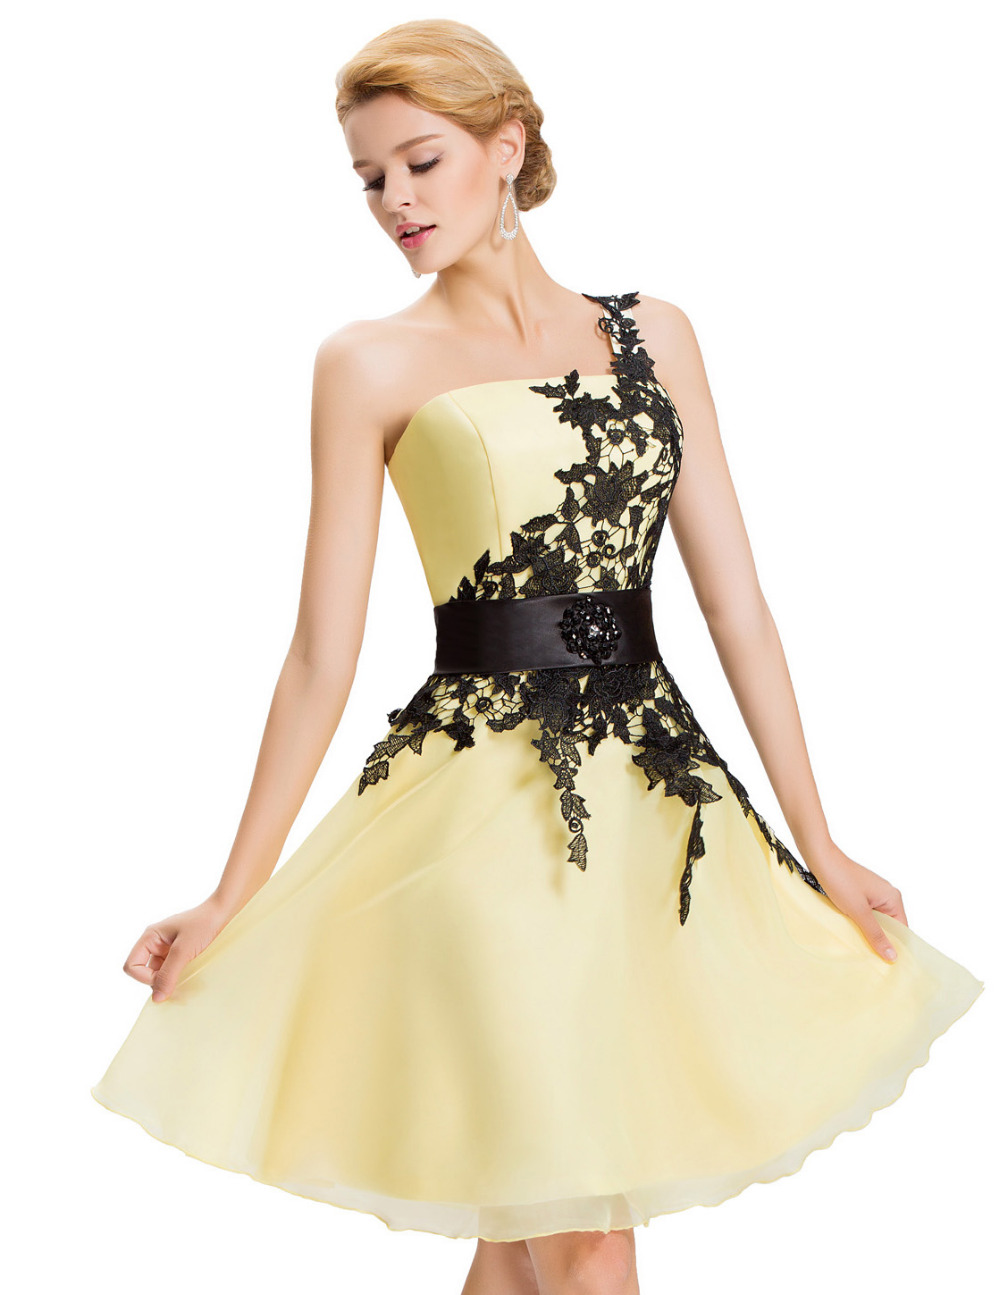 Yellow Homecoming Dresses Yellow is a warm, joyful, and inviting color that has been growing in popularity recently. Yellow homecoming dresses are unique look which not everyone can pull off.